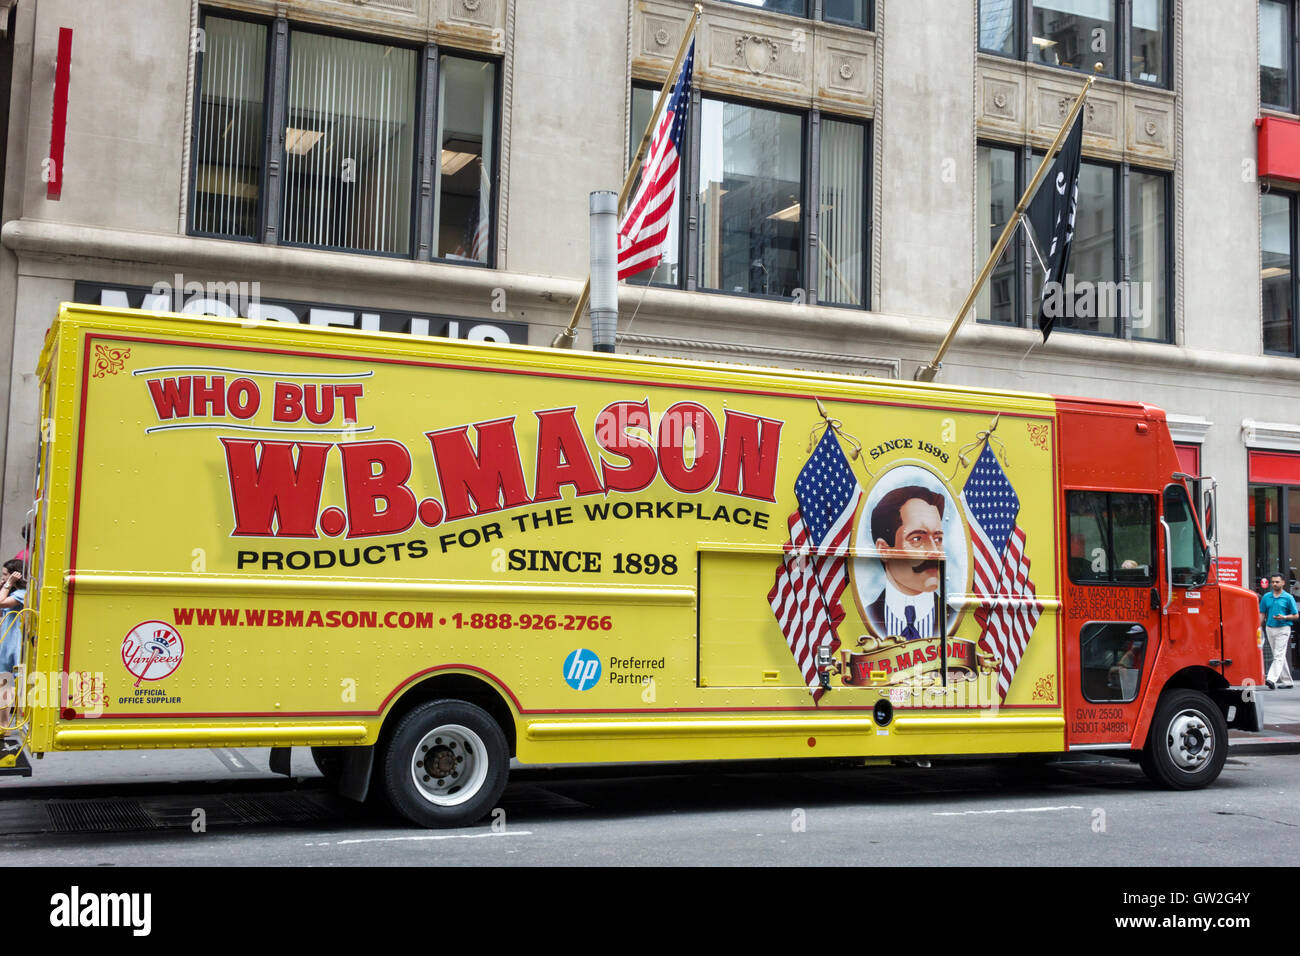 W B Mason High Resolution Stock Photography and Images - Alamy